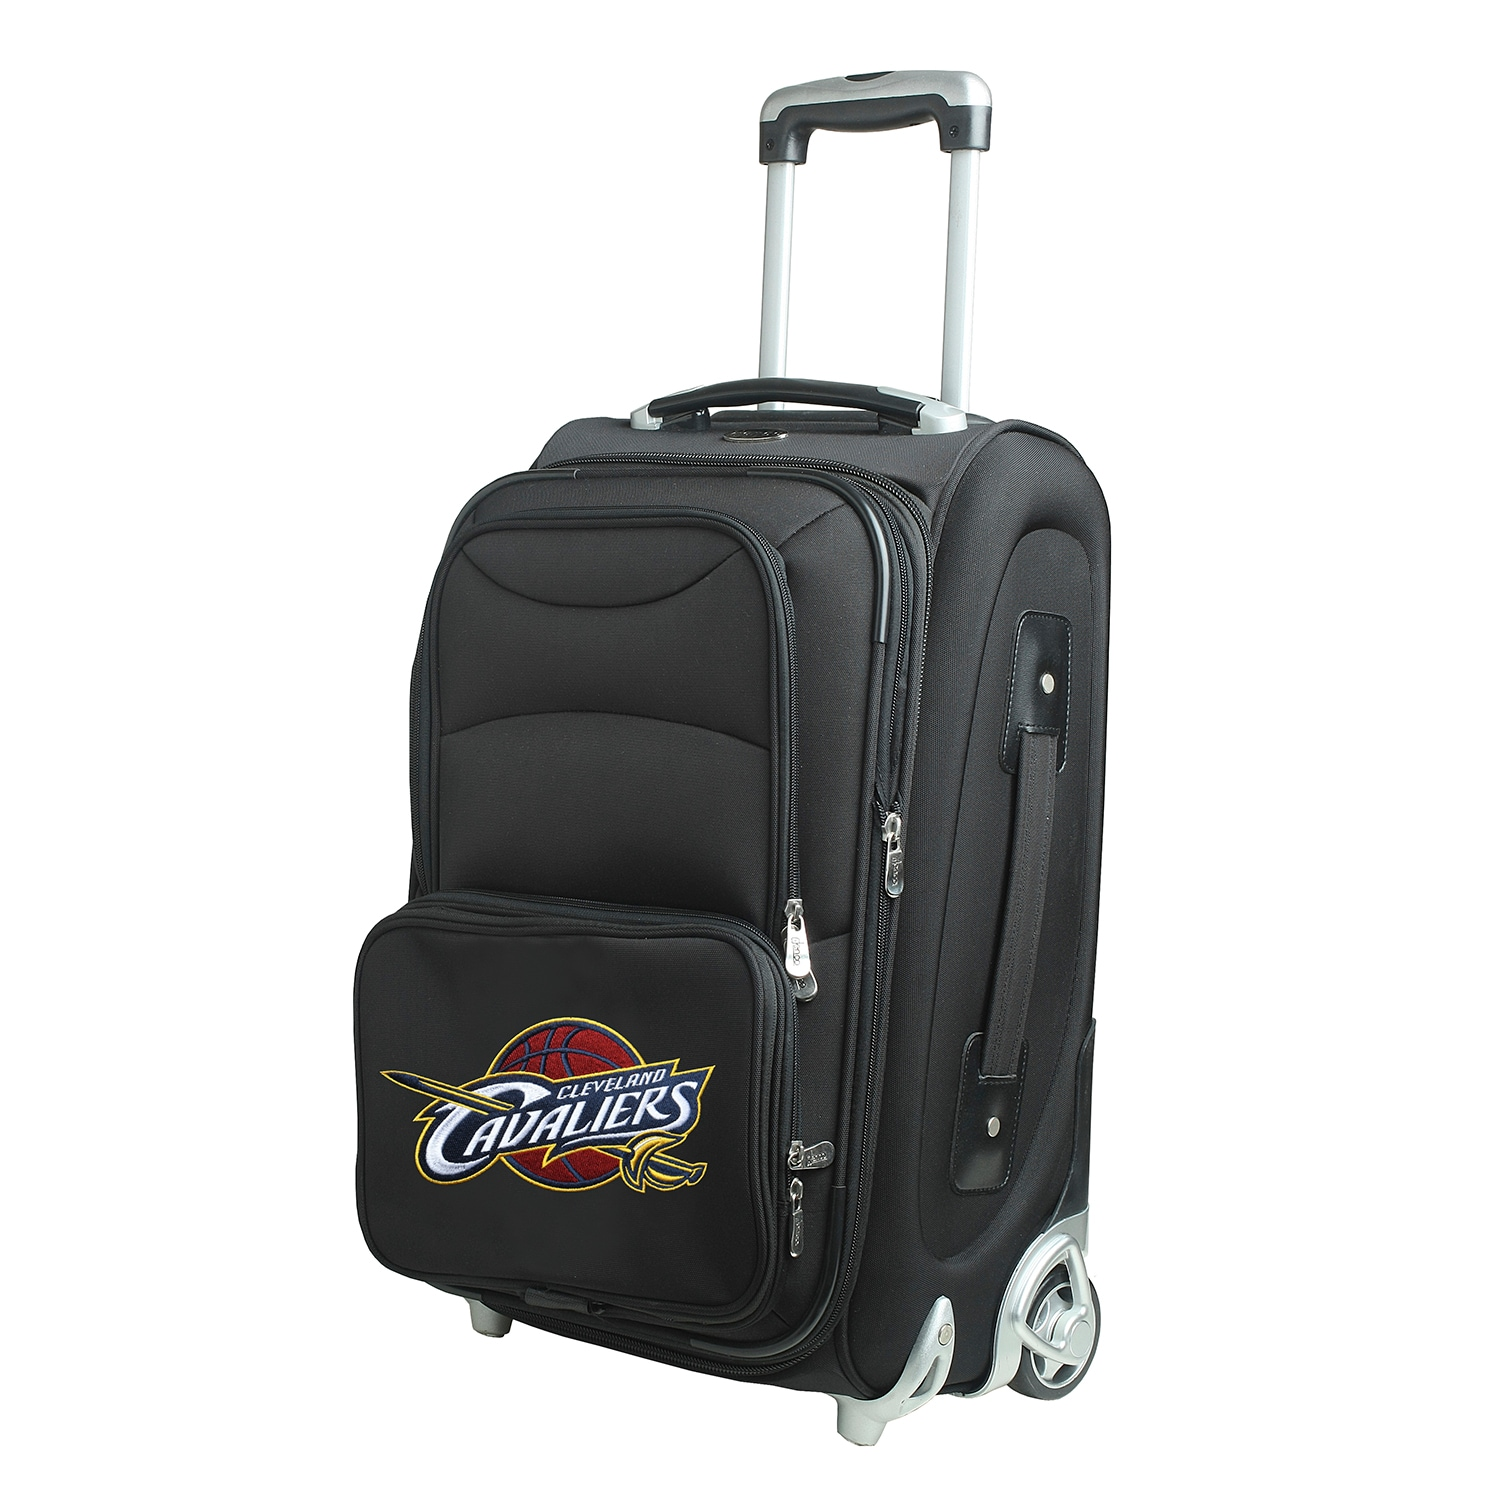 "Cleveland Cavaliers 21"" Rolling Carry-On Suitcase"